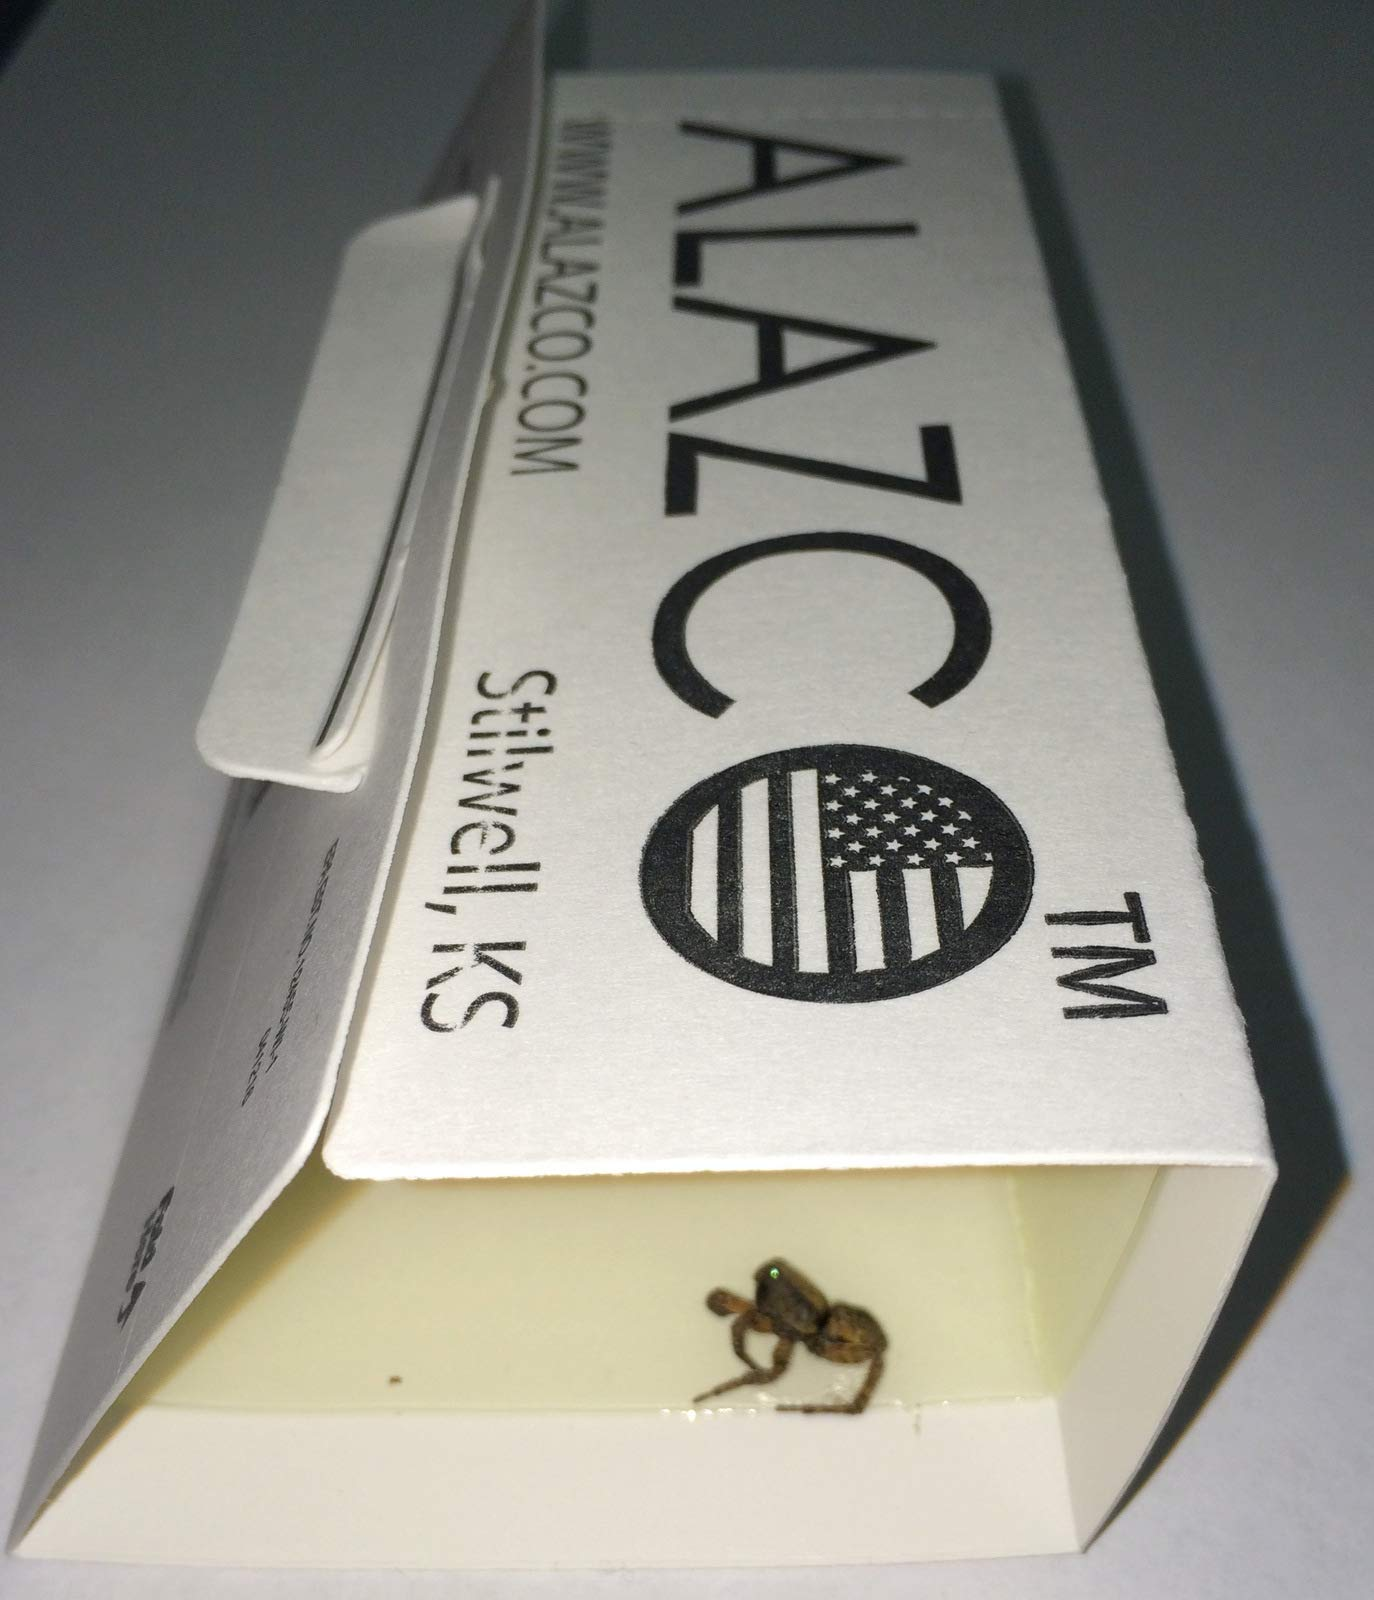 ALAZCO 12 Glue Traps - Excellent Quality Glue Boards Mouse Trap Bugs Insects Spiders Cockroaches Mice Trapper & Monitor NON-TOXIC by ALAZCO (Image #1)